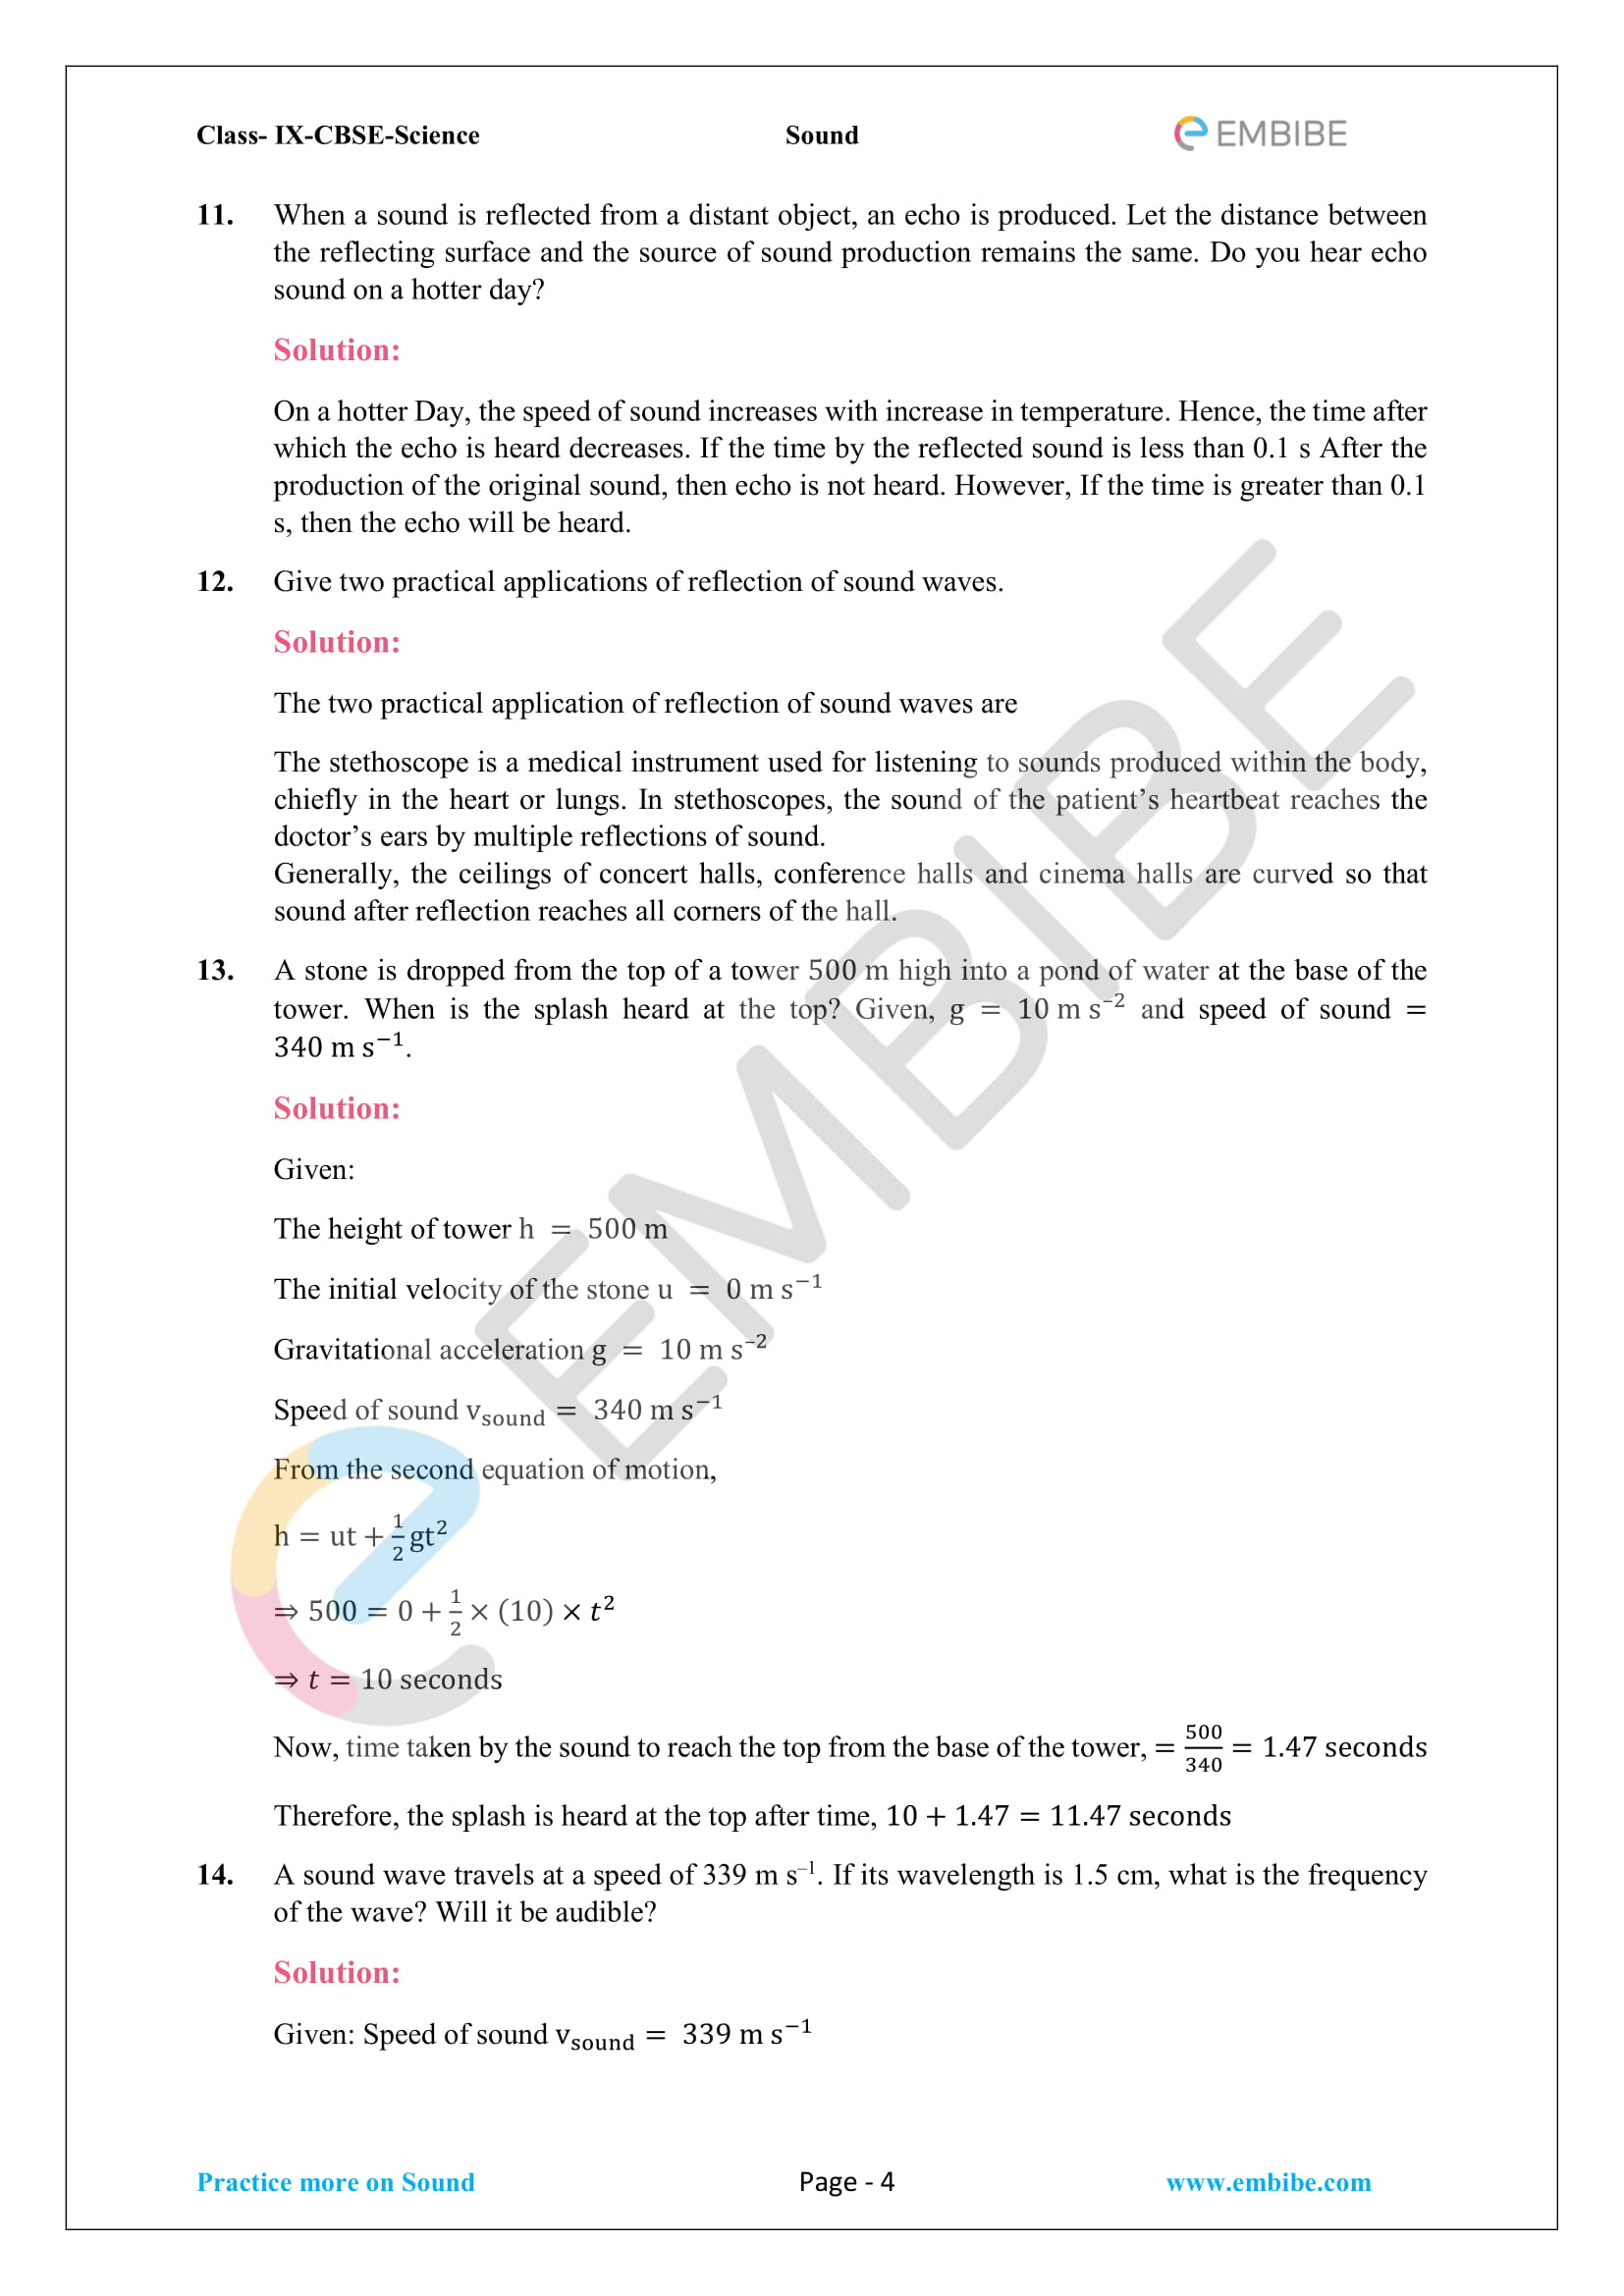 CBSE NCERT Solutions For Class 9 Science Chapter 12 - Sound - 4